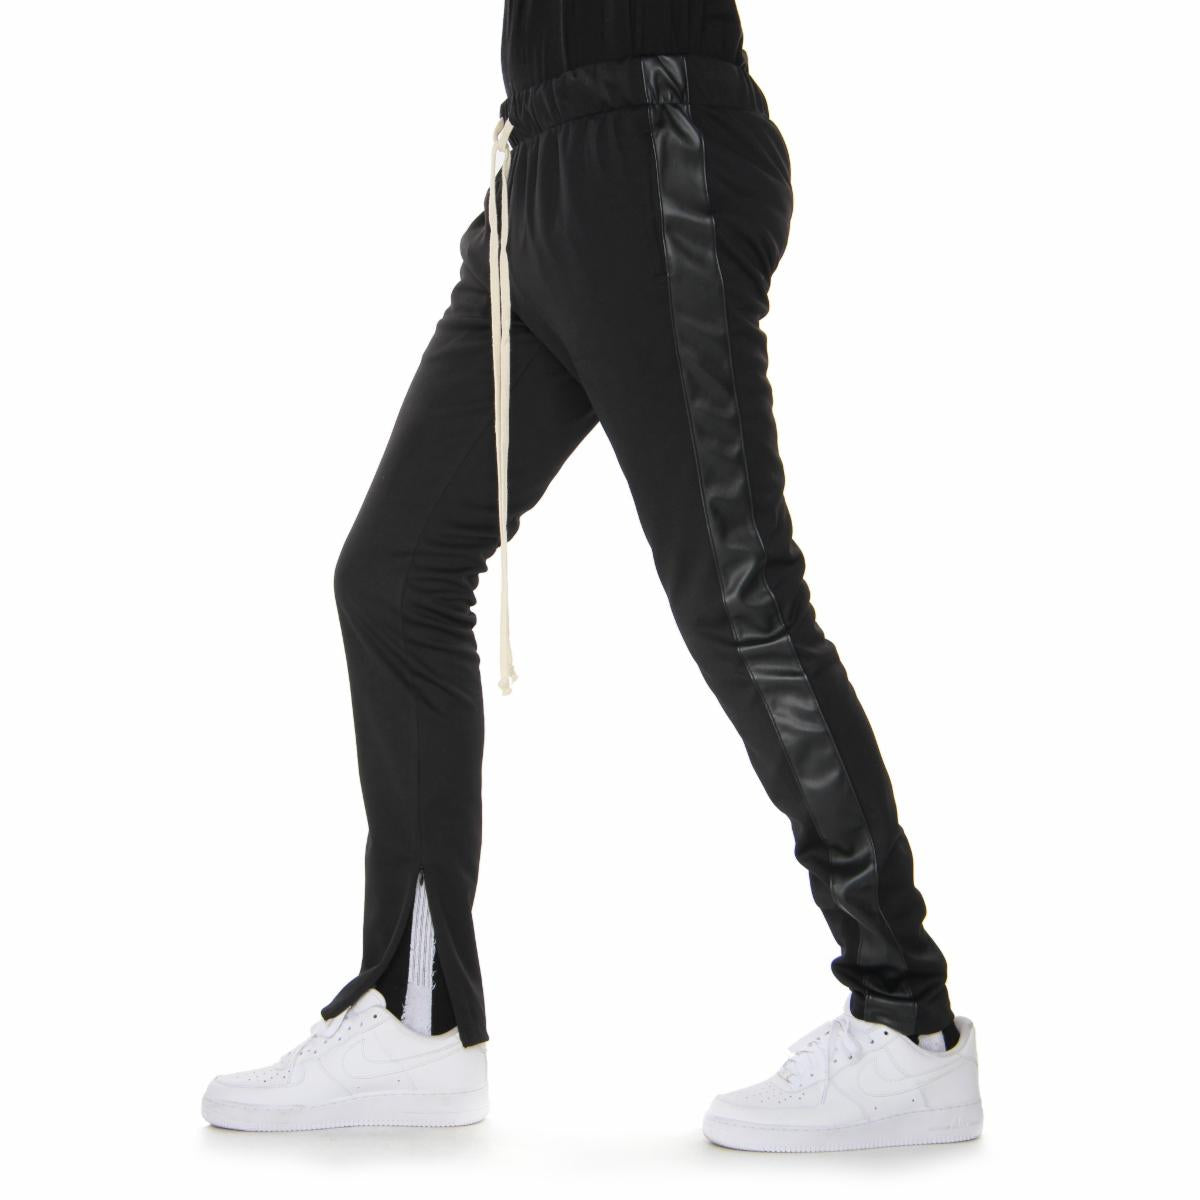 Track Pants - Black/Black Vegan Leather